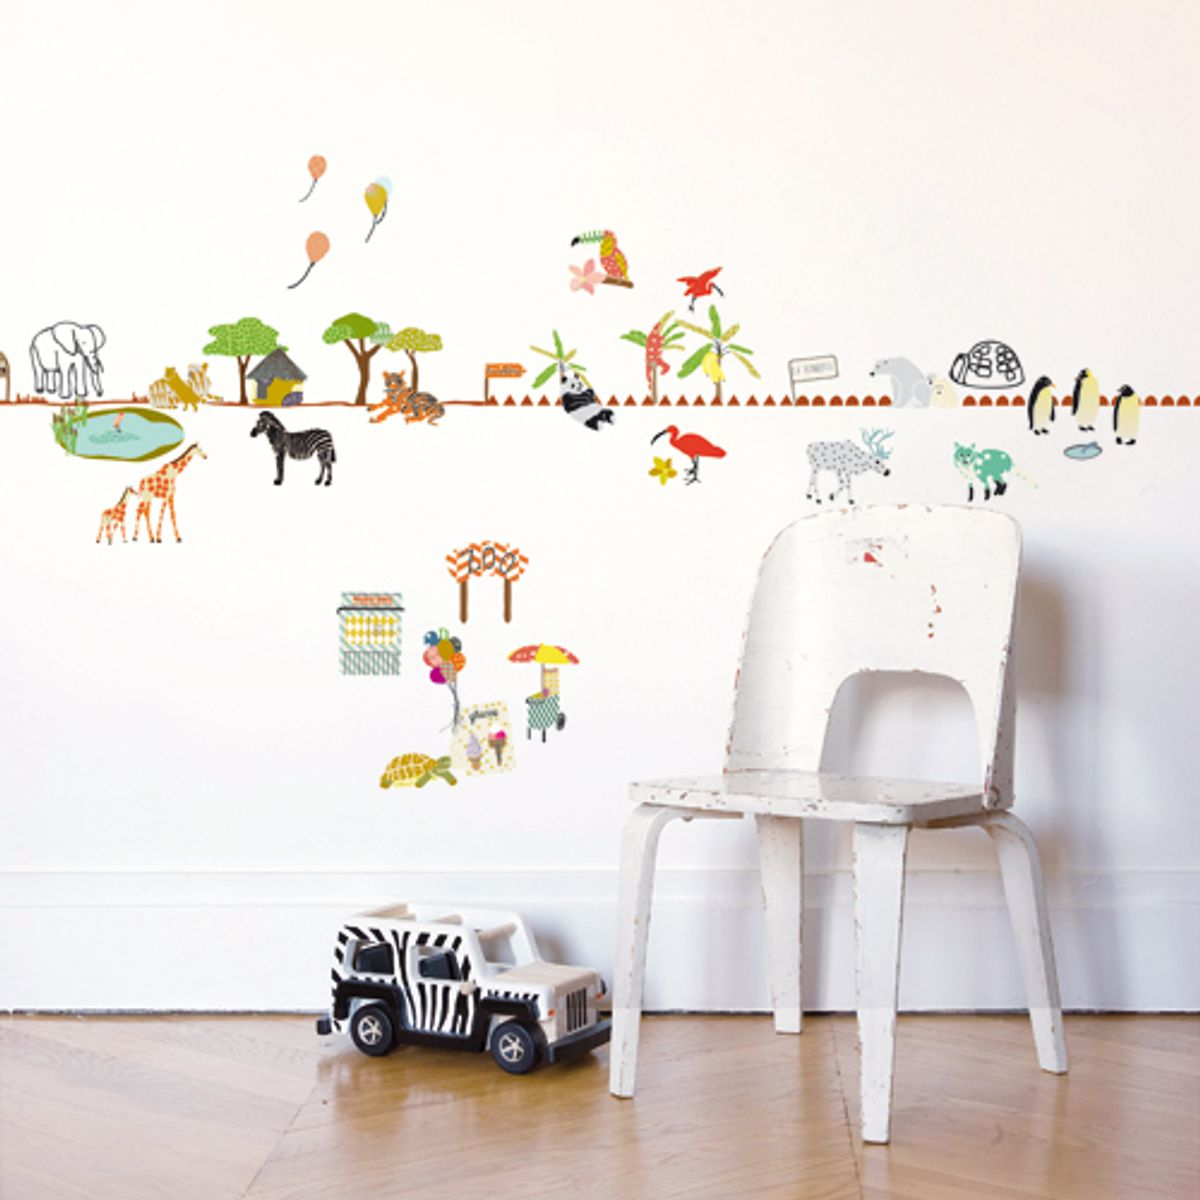 sticker frise murale pour enfant ballade au zoo mimi lou decoclico. Black Bedroom Furniture Sets. Home Design Ideas